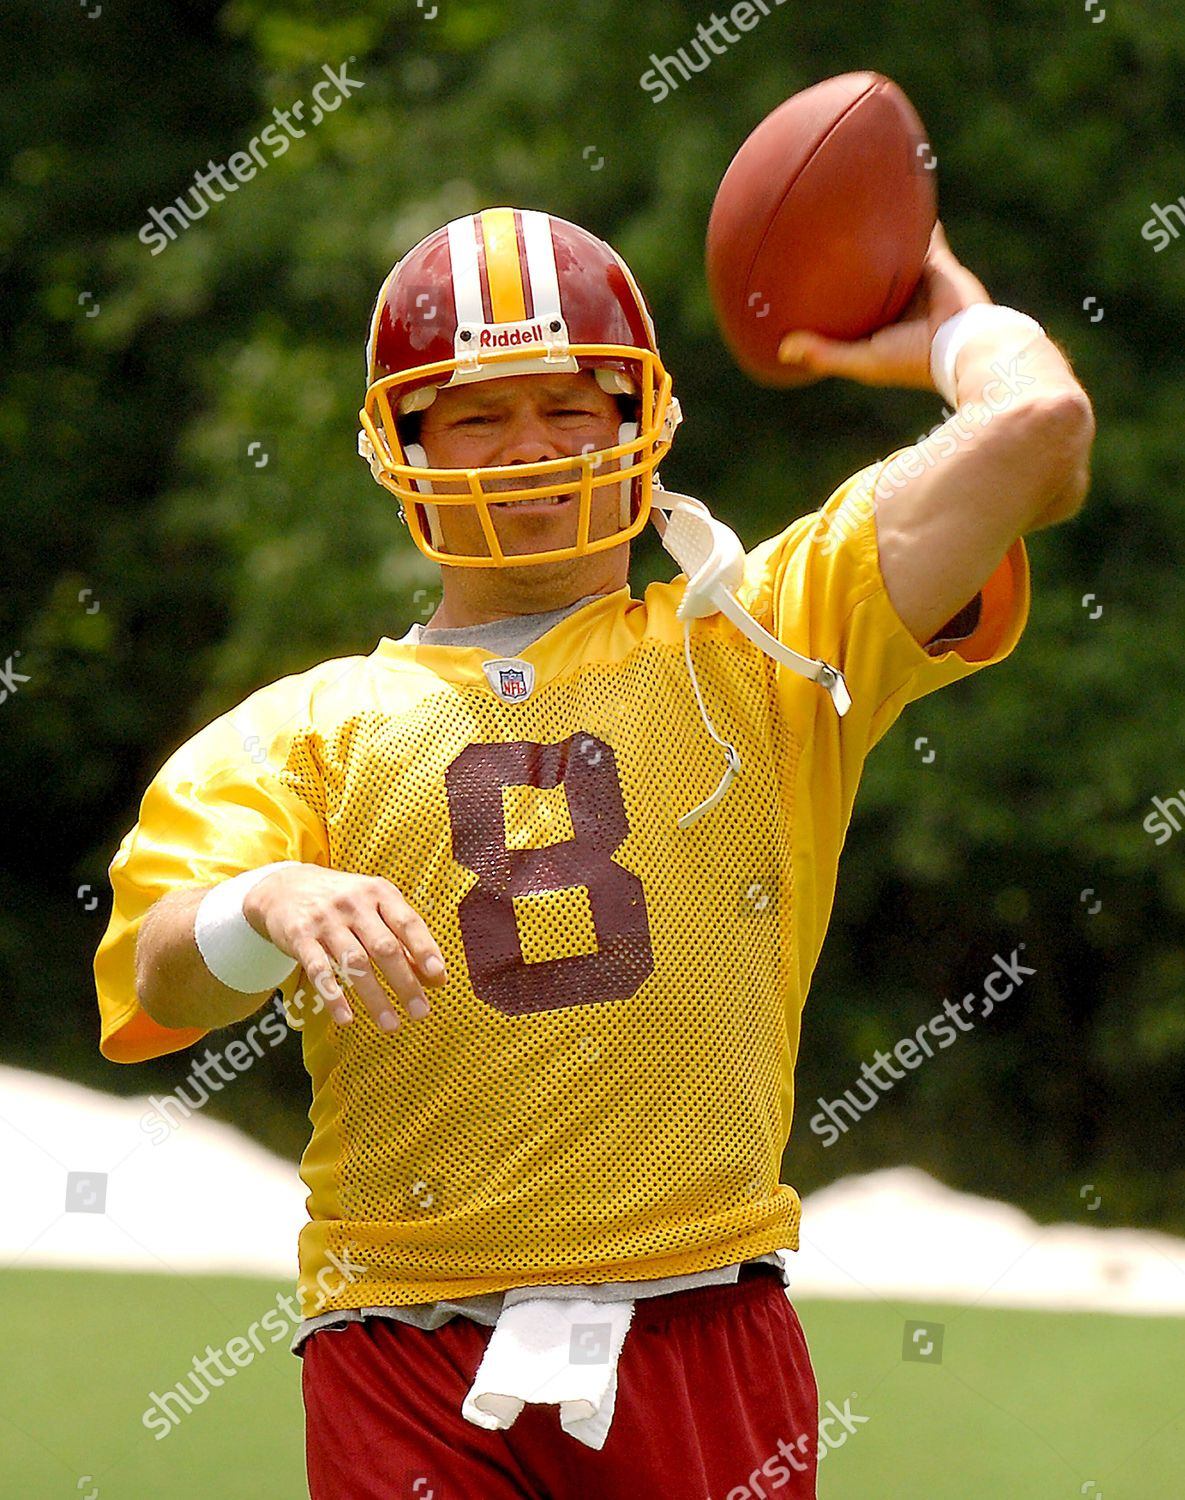 b56264268 Editorial Stock Photo of Washington Redskin backup quarterback Mark ...